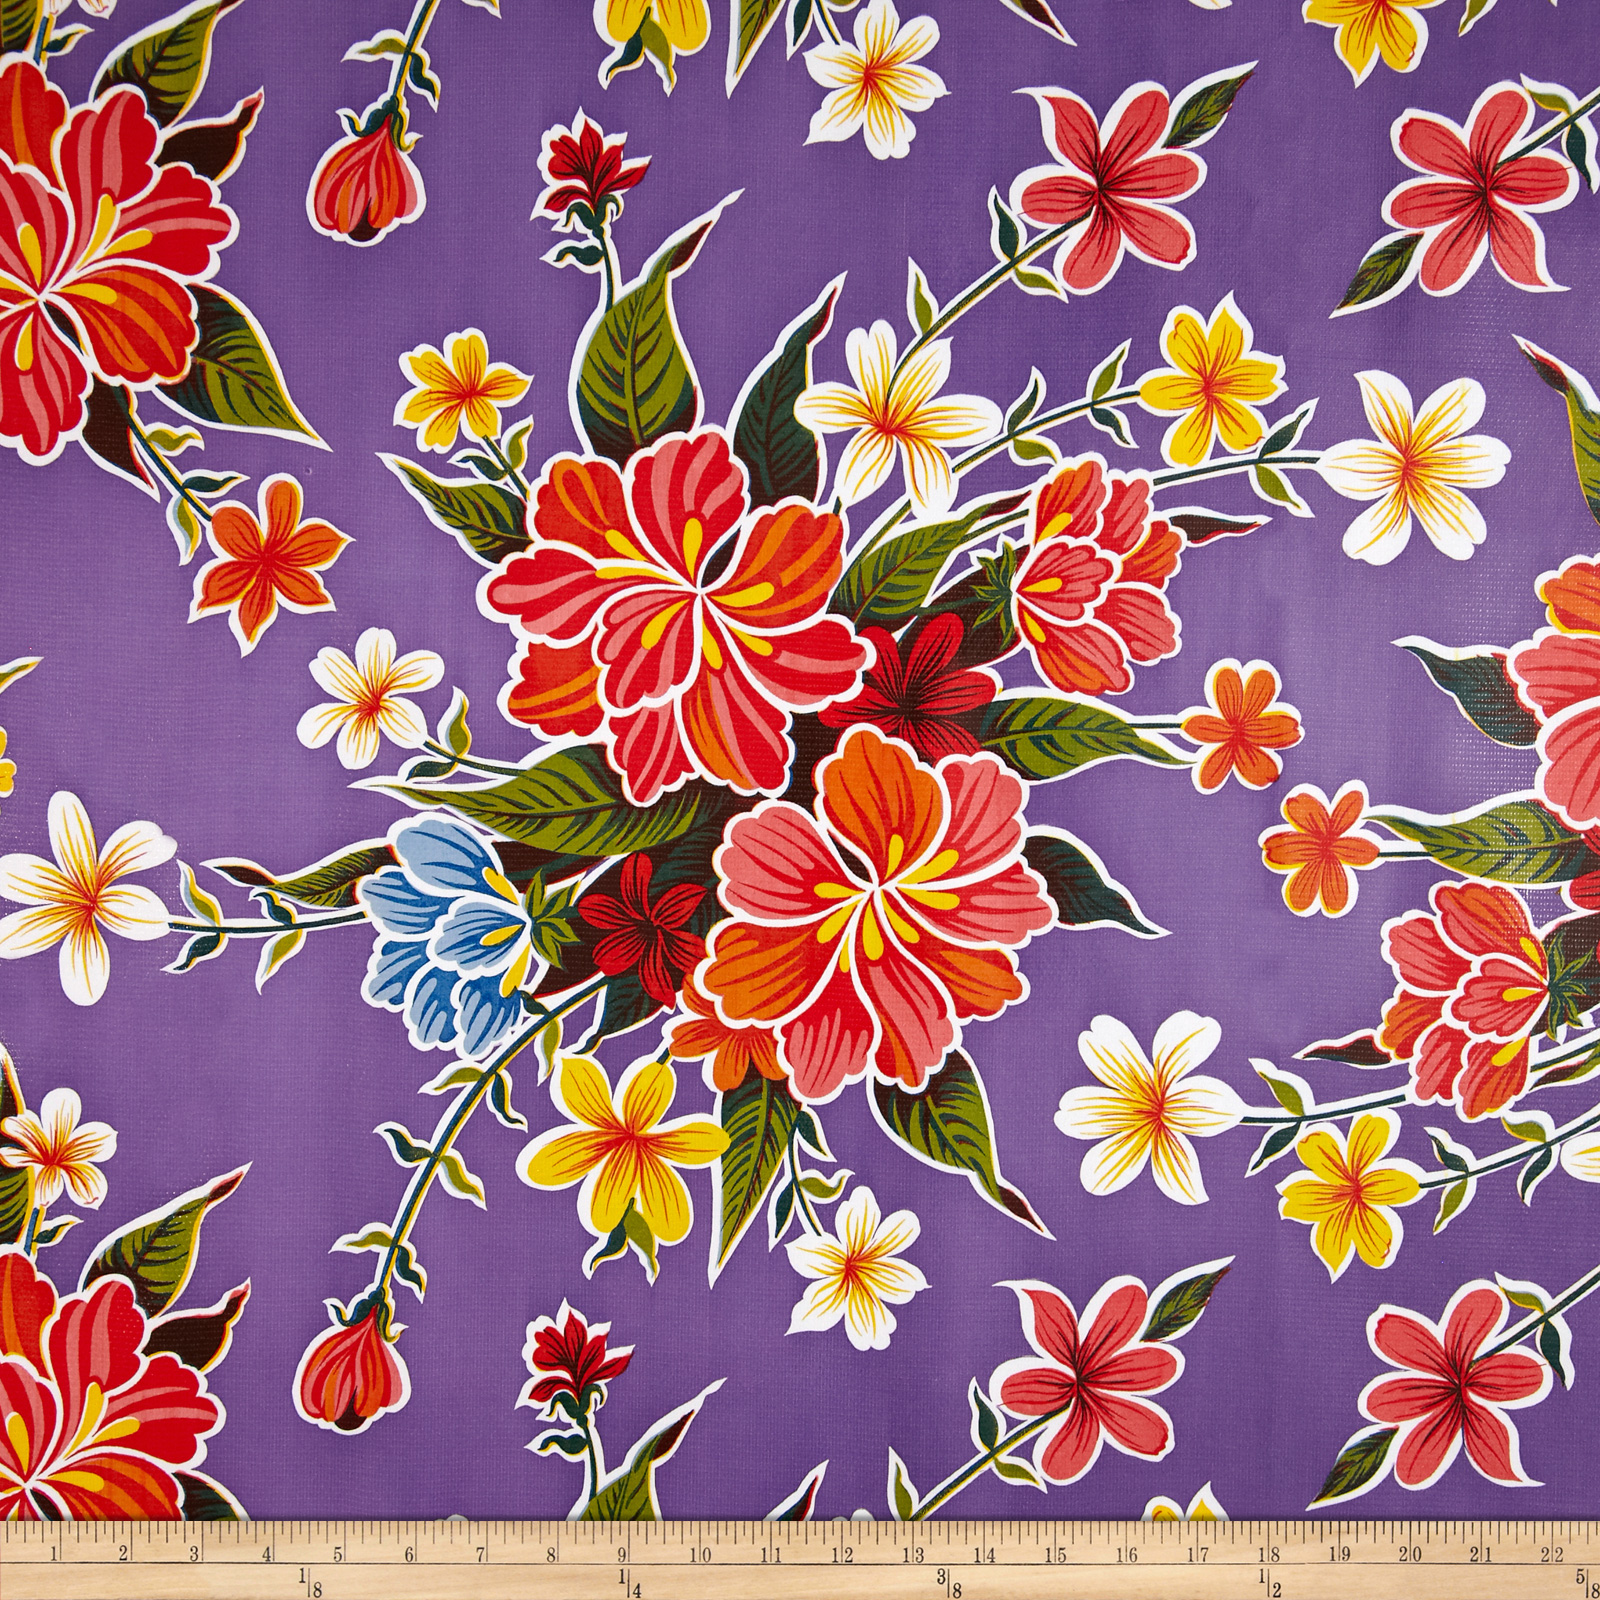 Oil Cloth Hibiscus Dark Purple Fabric